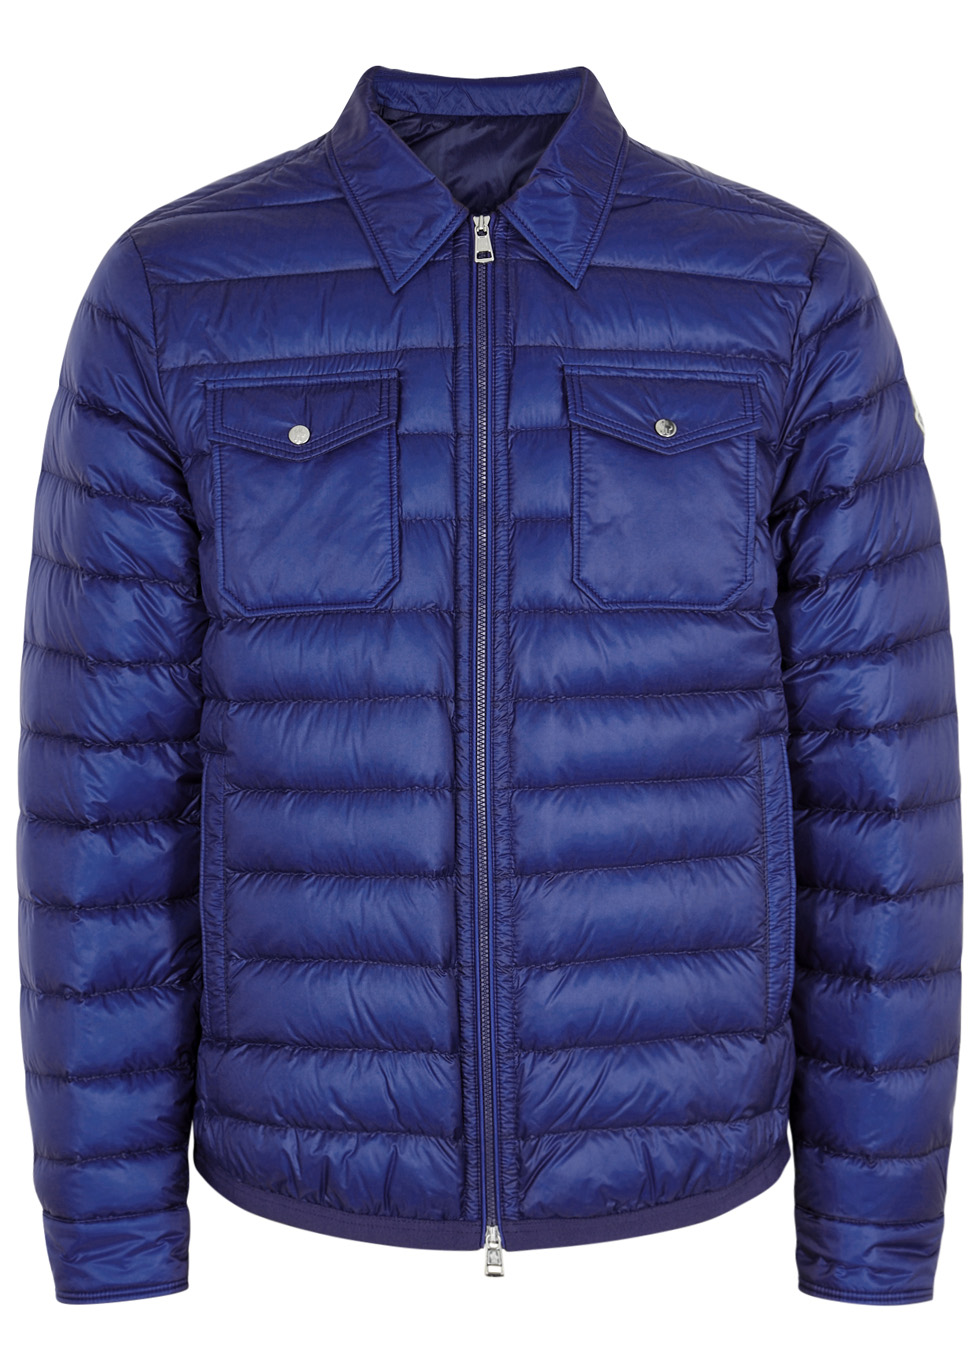 Terrence quilted shell jacket - Moncler